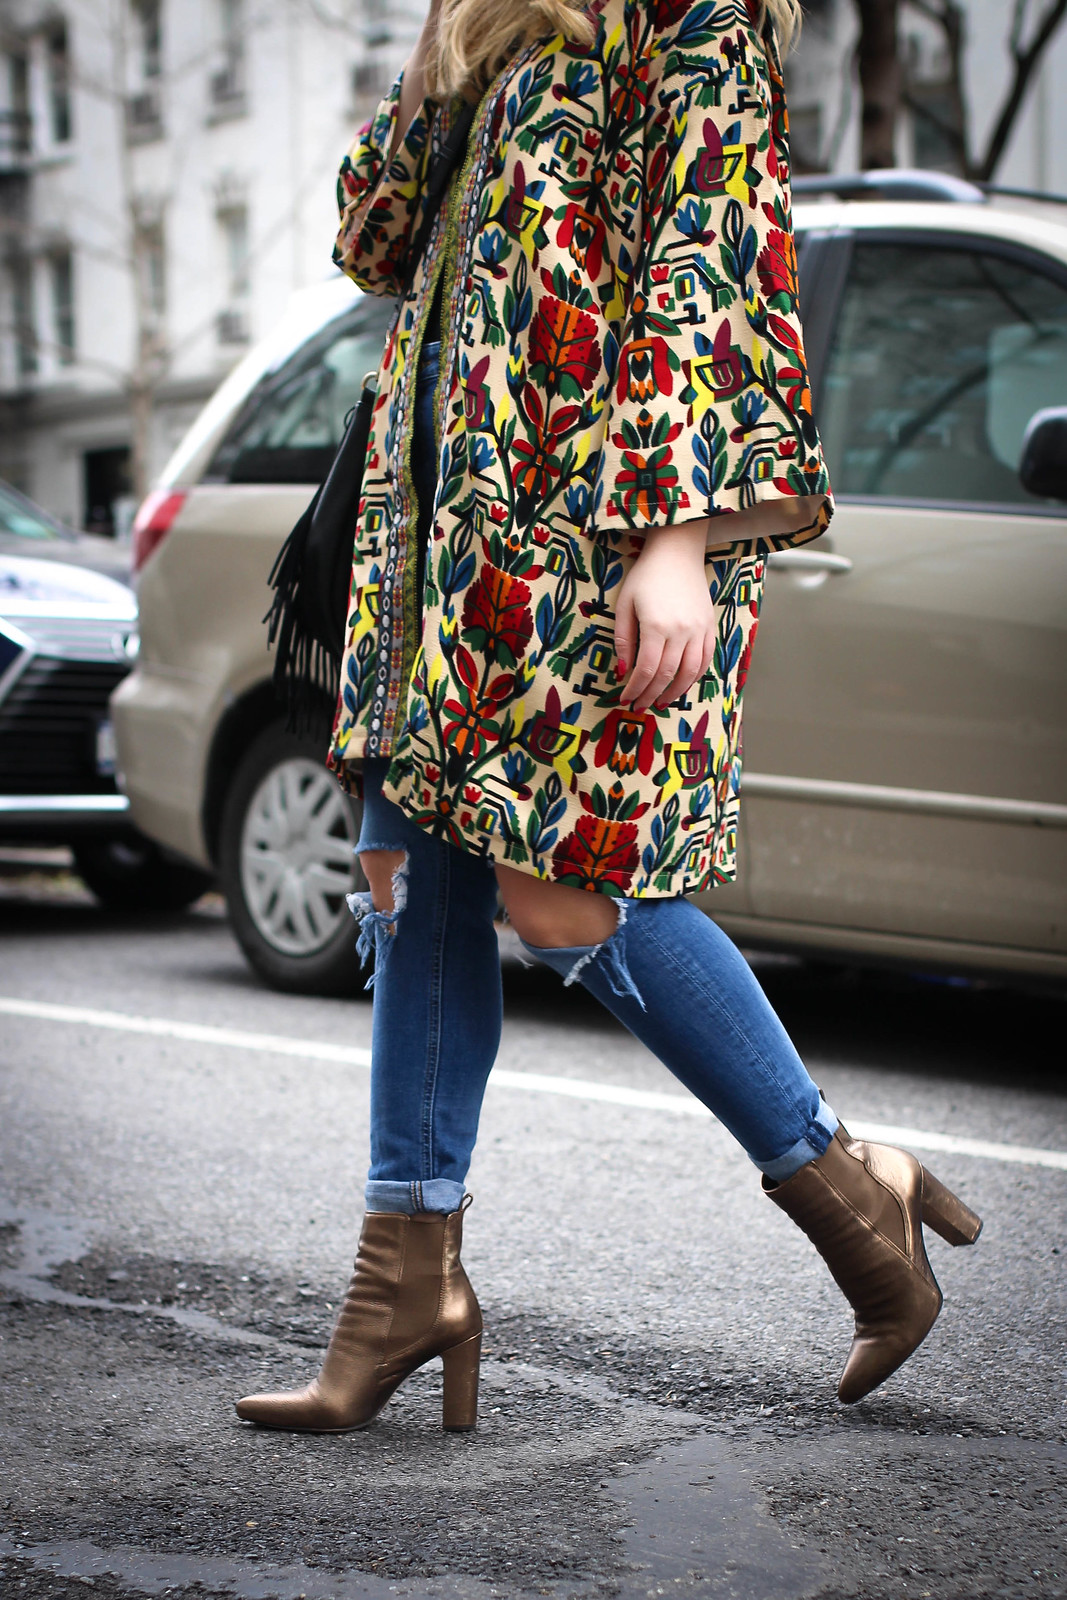 Colorful Embroidered Spring Jacket | Distressed Jeans | Bronze Heeled Booties